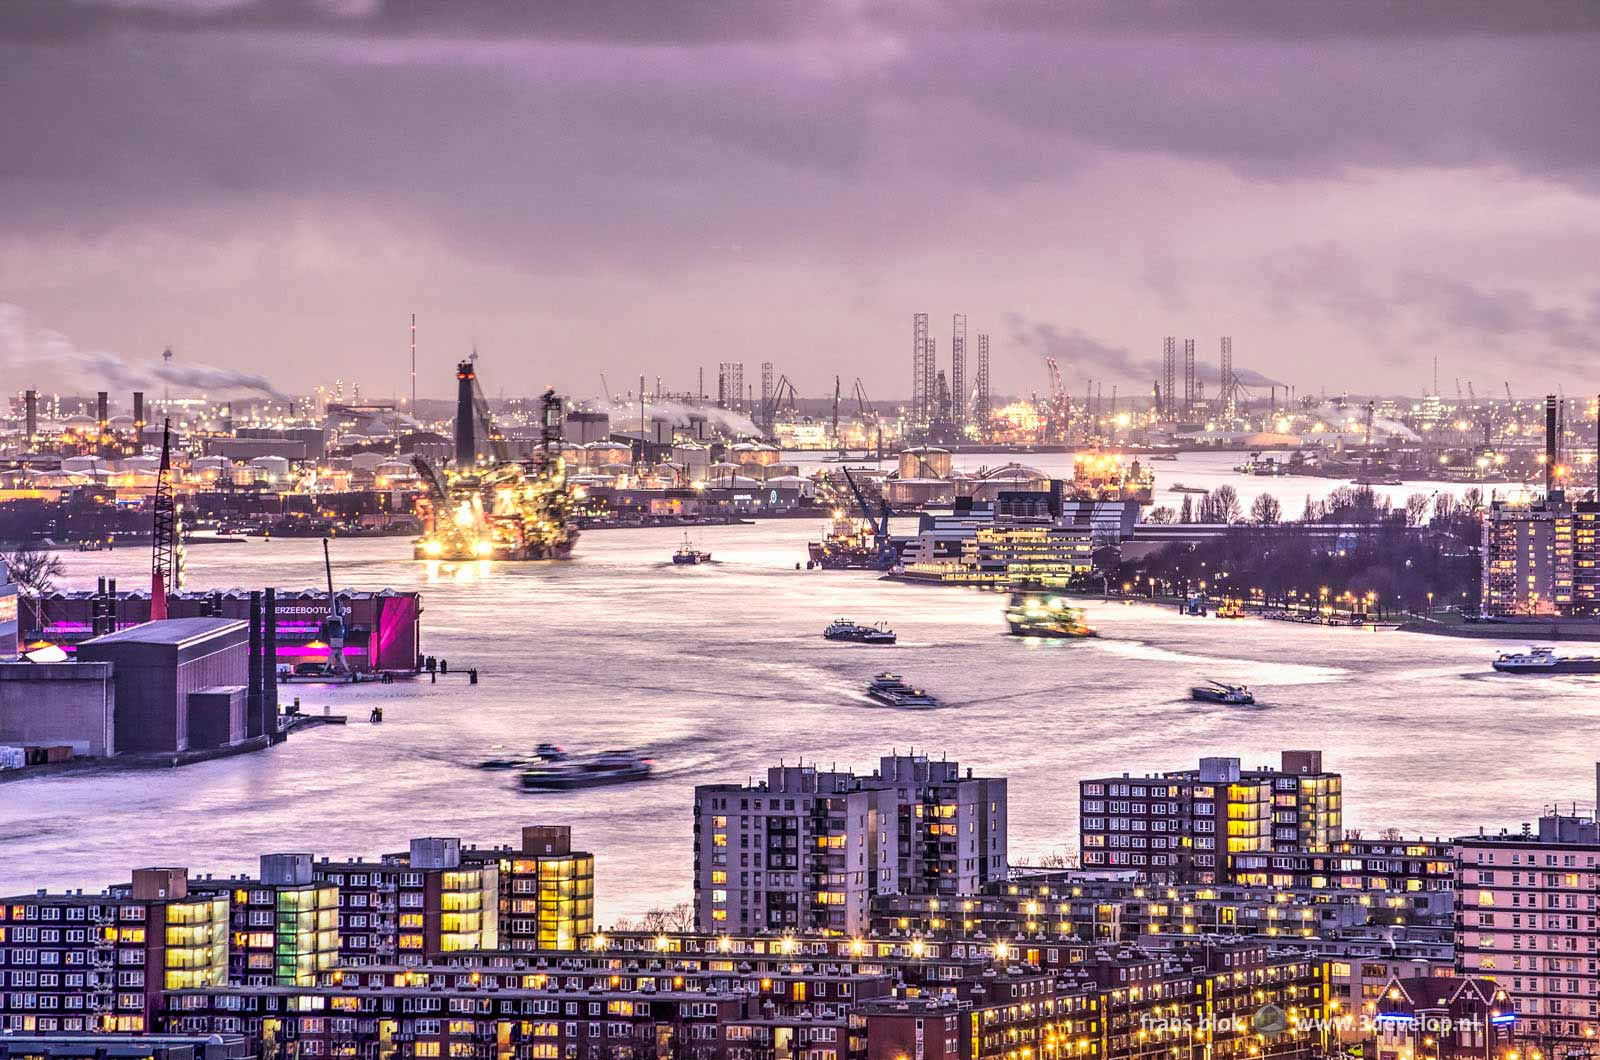 Evening view of the Nieuwe Maas river in Rotterdam with in the foreground the neighbourhood of Schiemond, left Heyplaats, right Schiedam and in the background the industrial areas of Pernis, Botlek and Europoort